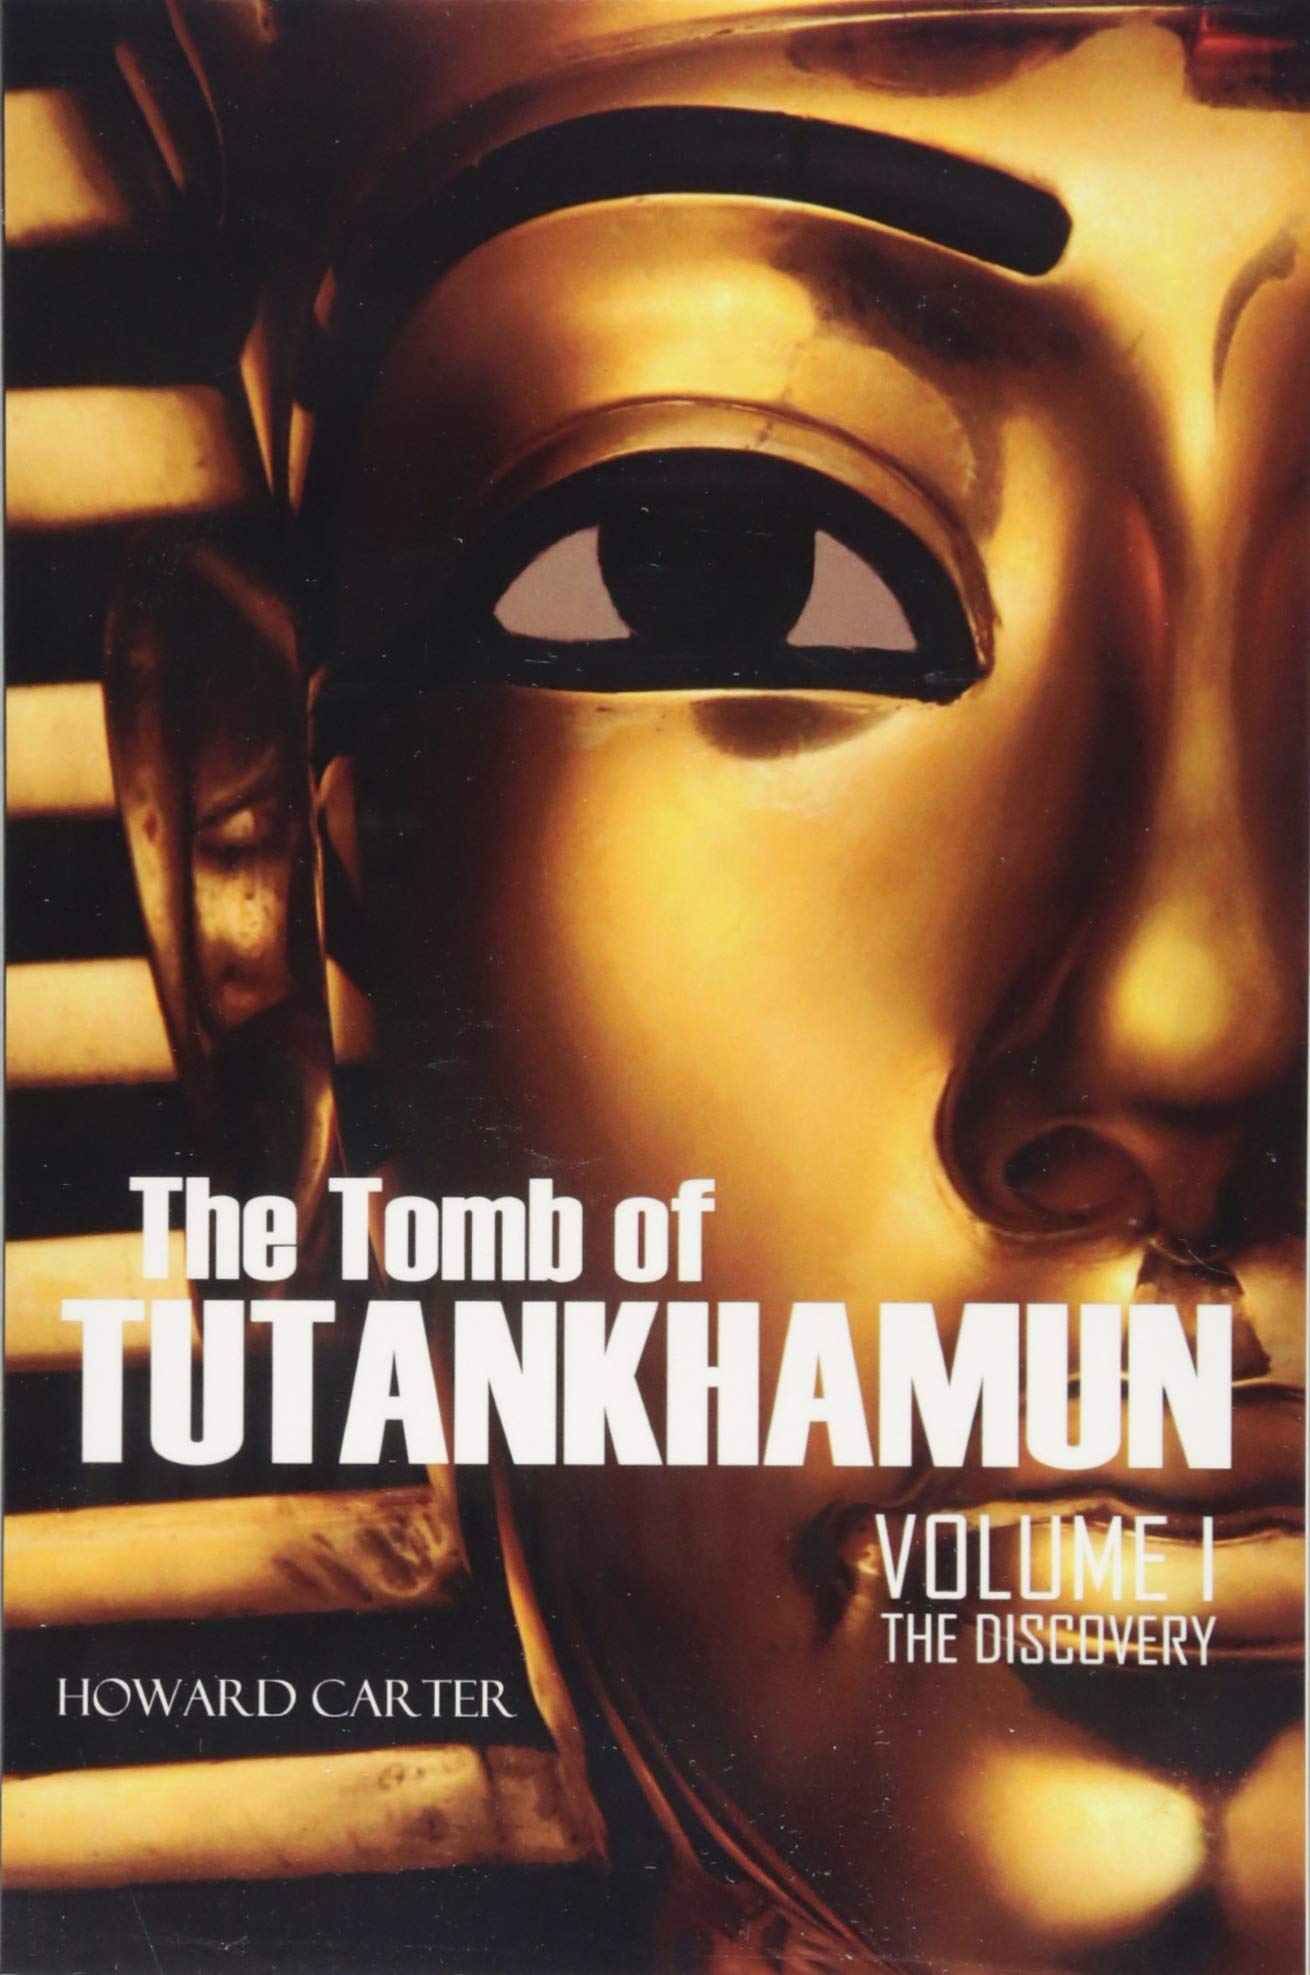 The Tomb of Tutankhamun: Volume I—The Discovery Expanded, Annotated: Amazon.es: Carter, Howard, Mace, A.C.: Libros en idiomas extranjeros